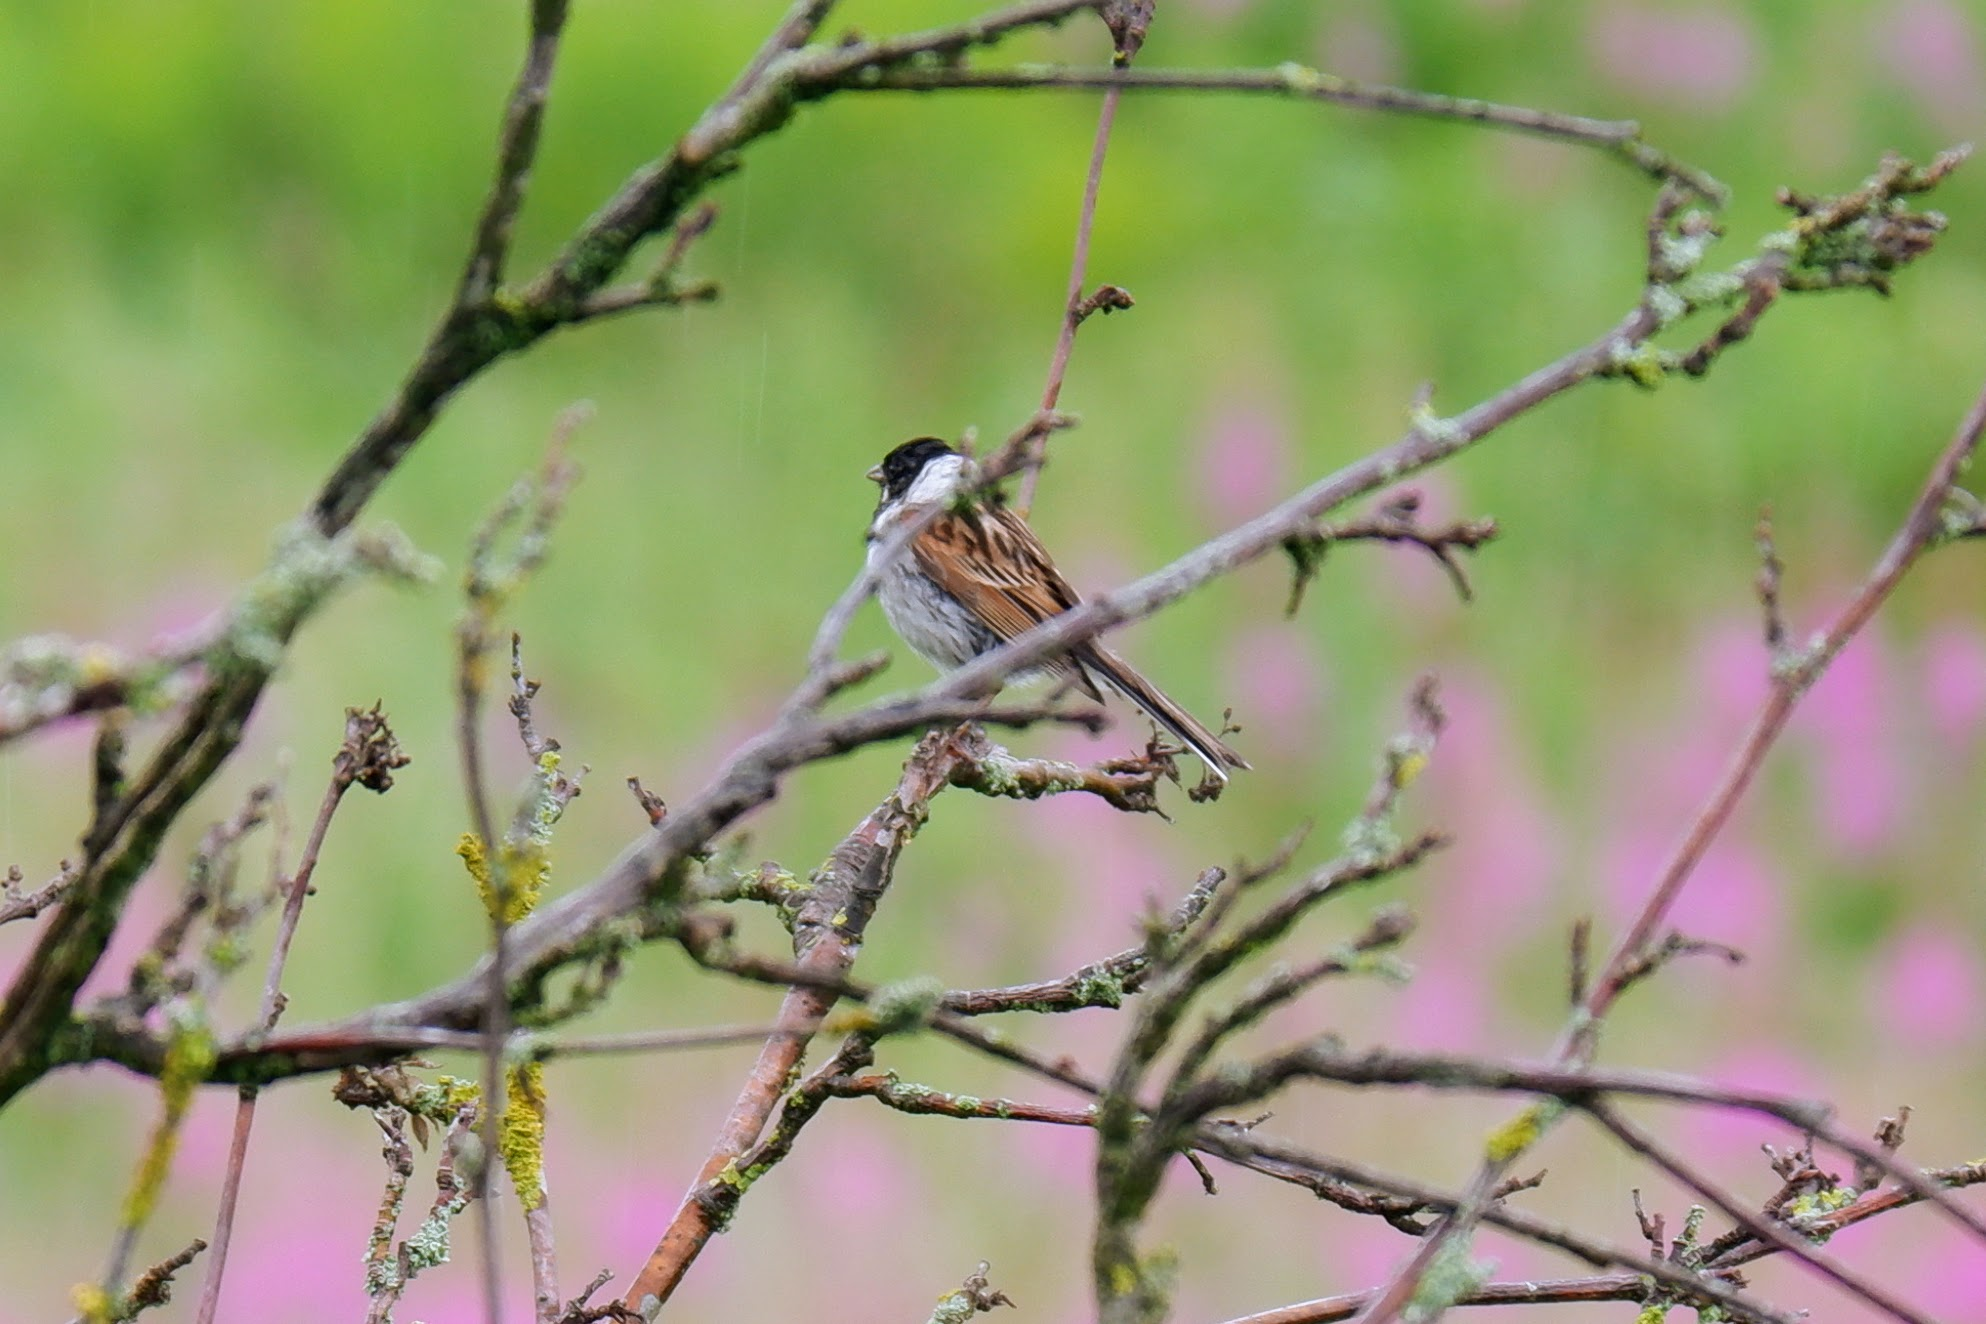 Male reed bunting, River Mersey, Chorlton